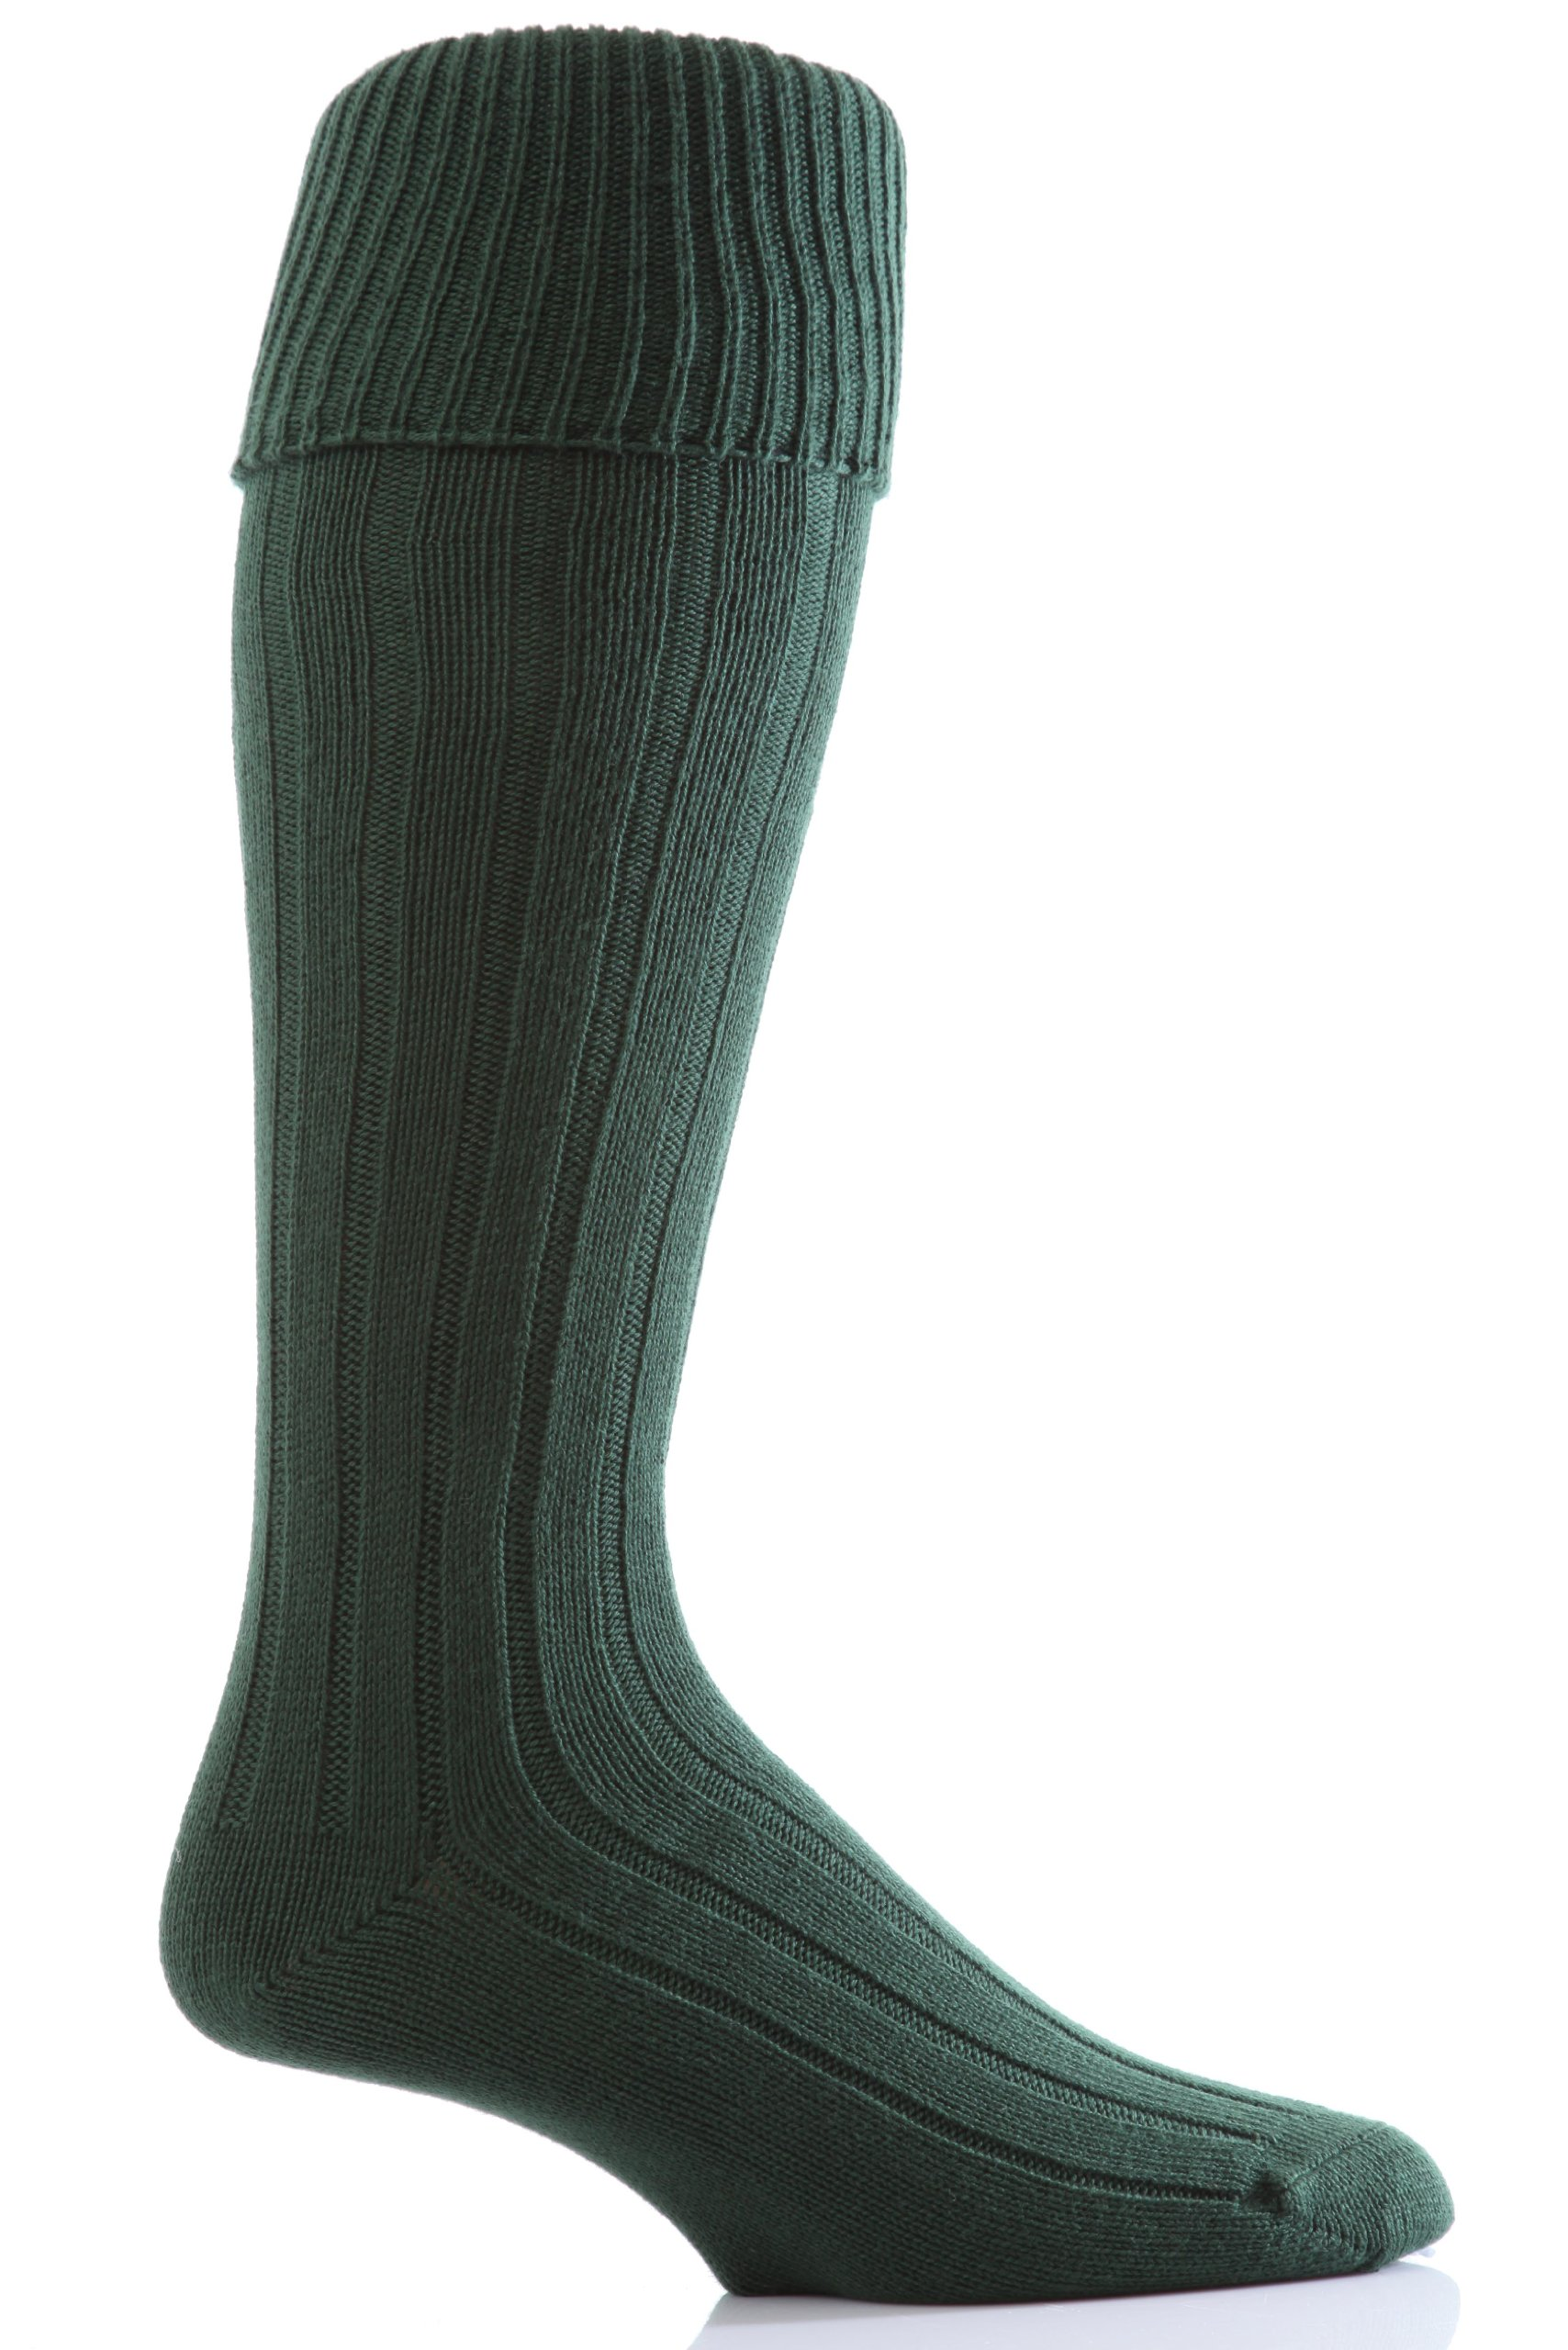 Glenmuir Men's 1 Pair Birkdale Golf Wool Knee High Socks with Turn Over Cuff 8-12 Bottle Green by Glenmuir